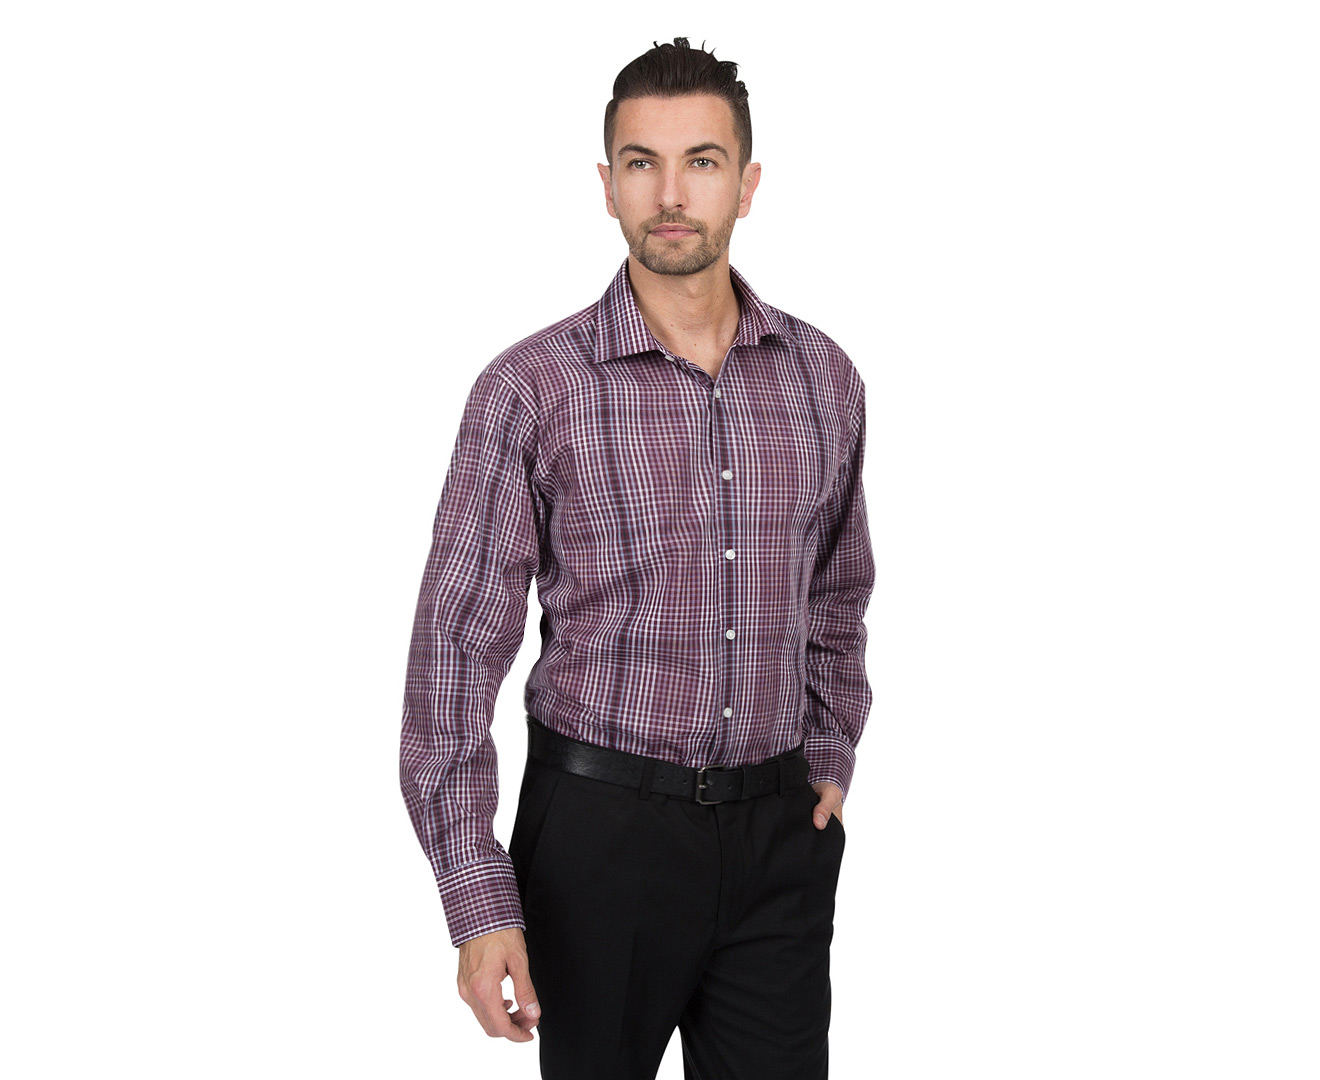 Mens Van Heusen® Slim fit stretch flex spread collar dress shirt is created slightly closer at the chest with higher armholes, trimmer sleeves and is the newest innovation from Van Heusen®. This wrinkle free shirt's collar expands up to 1/2 and inch. 67% Cotton, 29% Polyester, 4% Spandex.